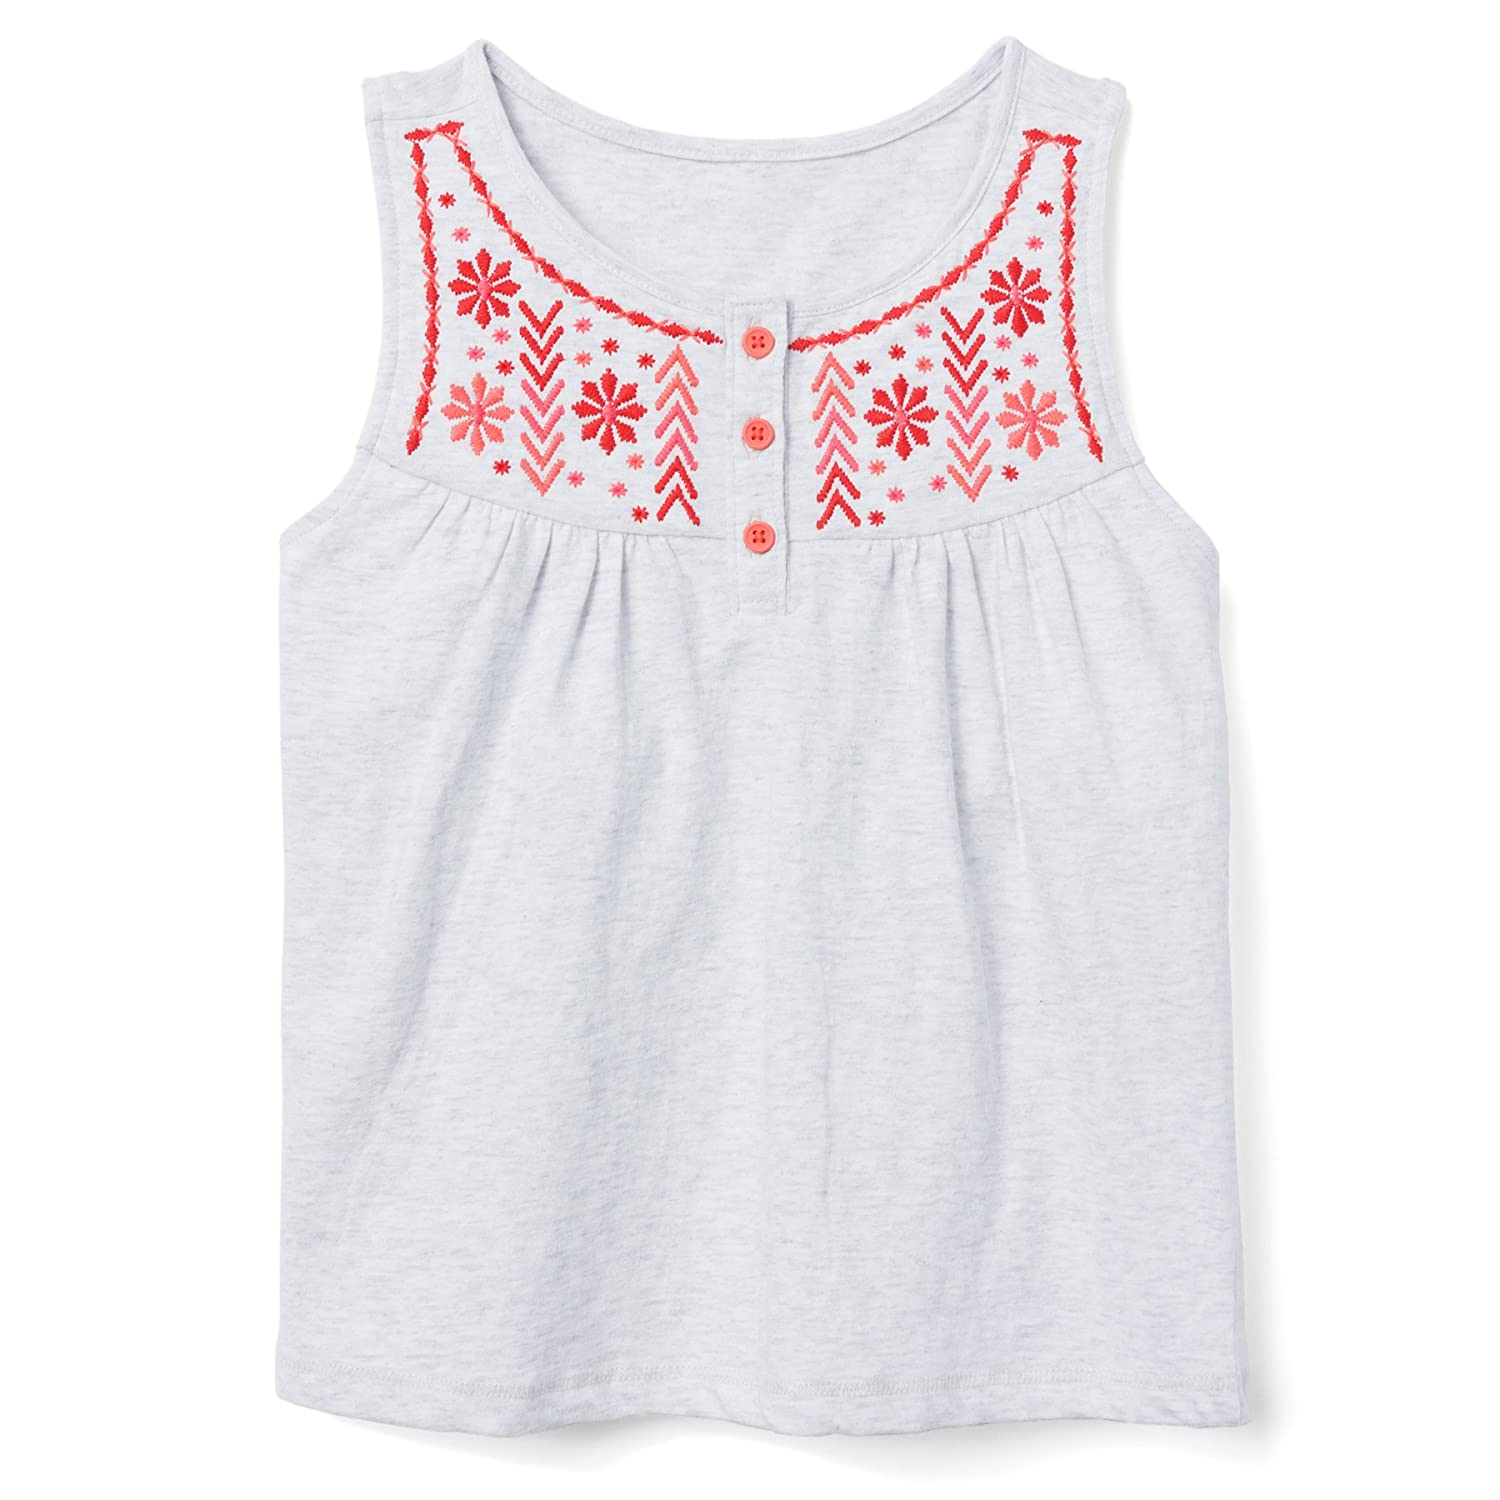 Gymboree Girls Embroidered Tank Top